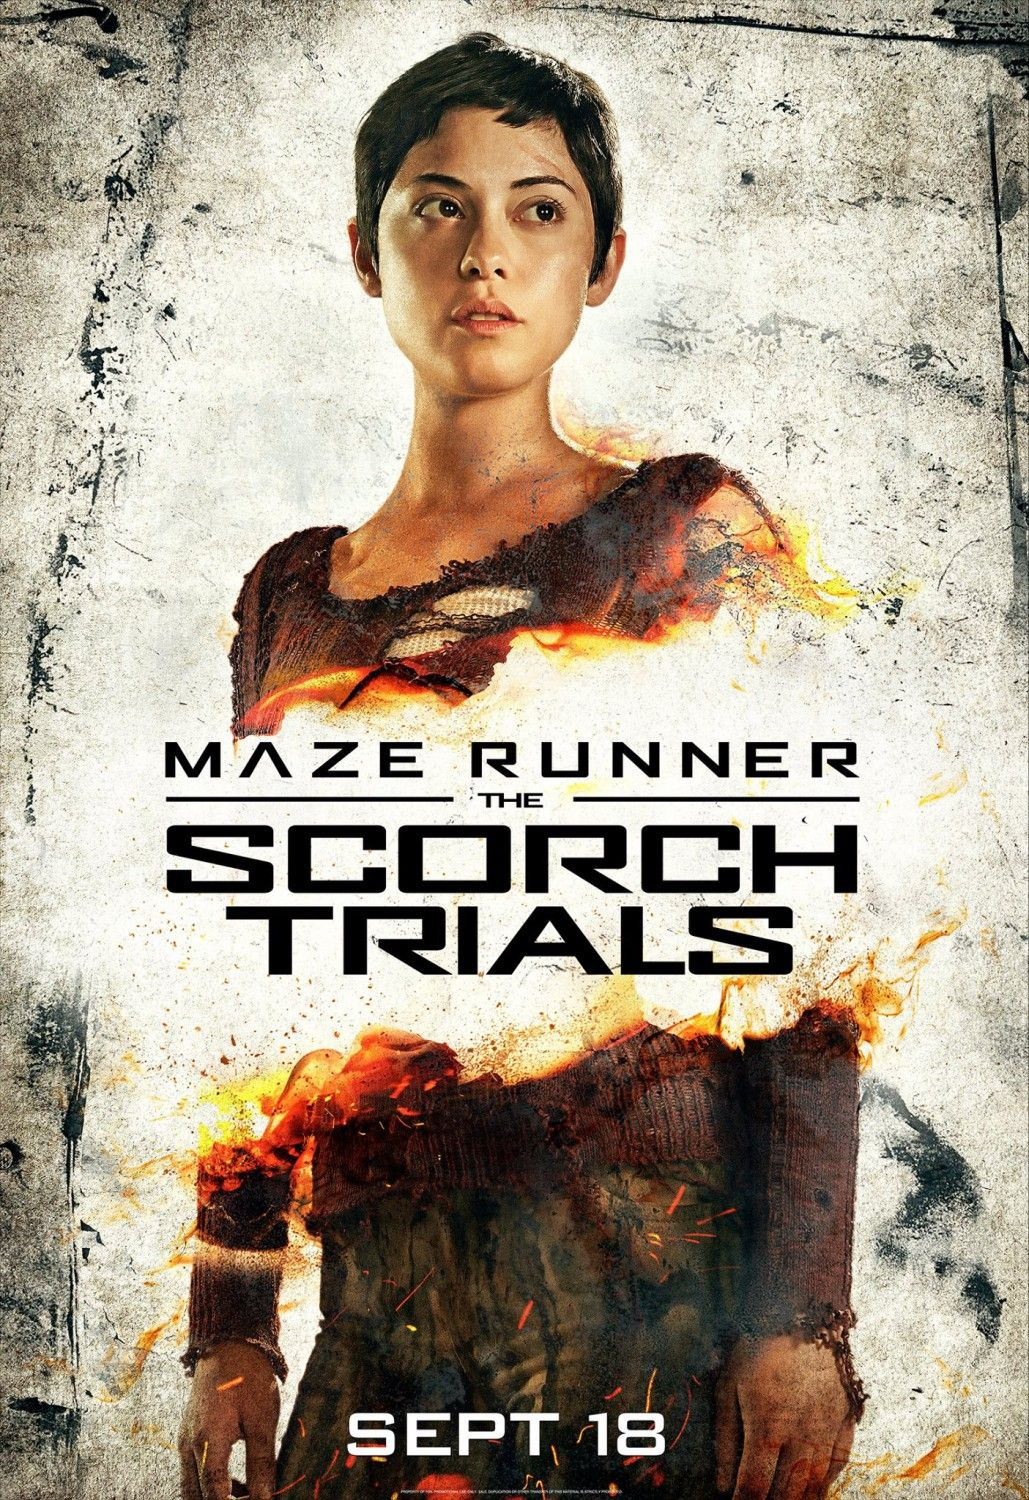 Maze Runner 2 Character Posters Feature Dylan O'Brien